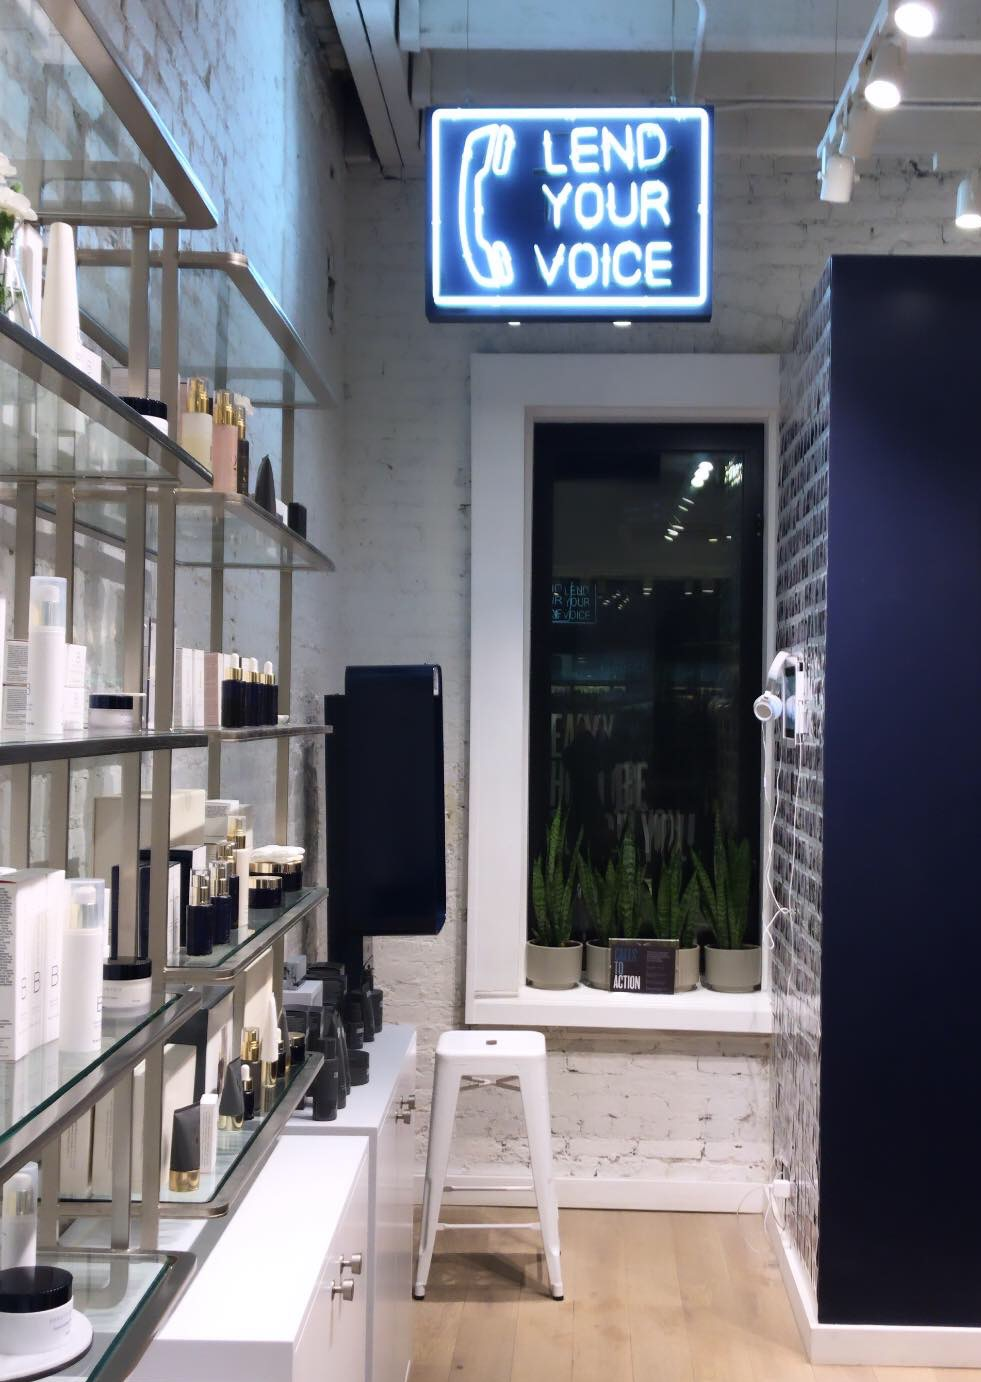 First of all, if you haven't been to the BEAUTYCOUNTER flagship in SoHo, you're missing out. It's beyond cute. The staff is so helpful (and diverse!), and there's even a phone booth where you can call any member of Congress to advocate for better beauty legislation. They even provide phone numbers!